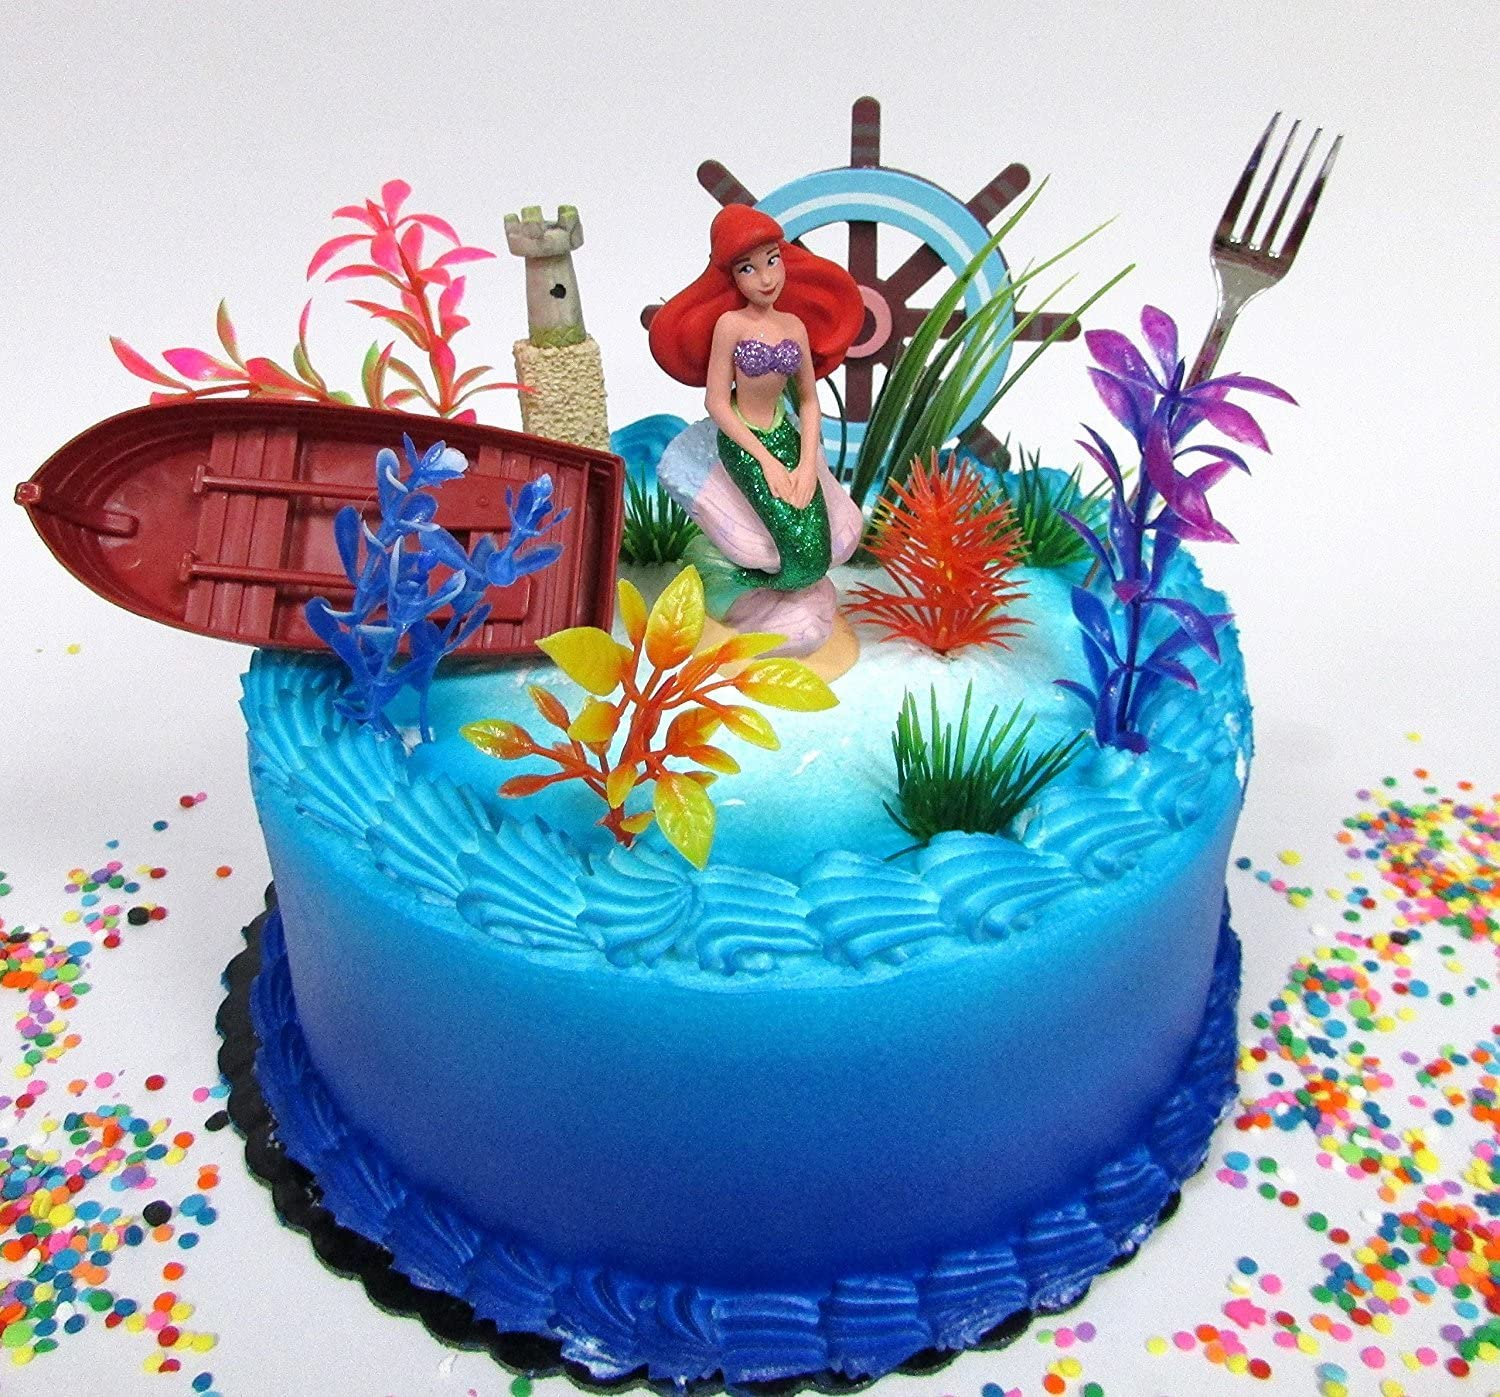 Cake Toppers Little Mermaid PRINCESS ARIEL Themed Birthday Set Featuring  Ariel Figure and Decorative Themed Accessories